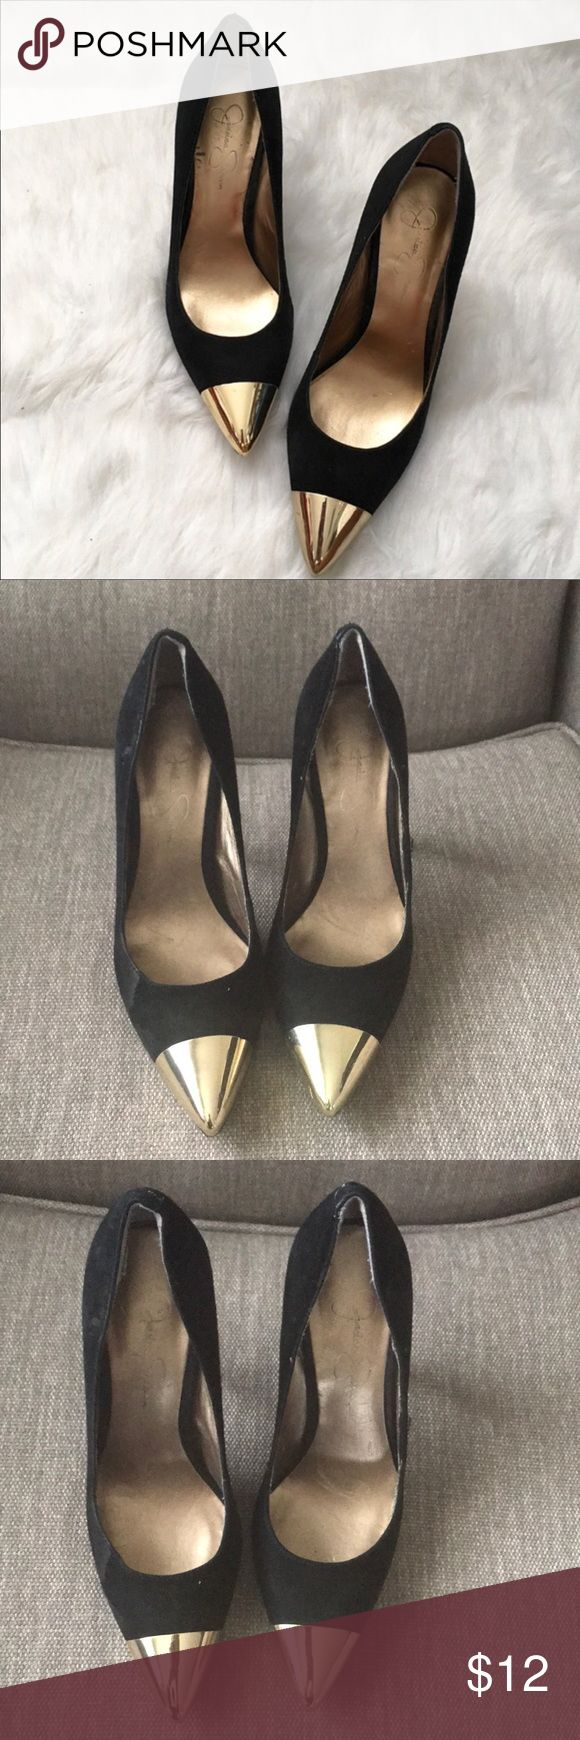 Jessica Simpson ' Dazed ' Pumps Preowned. No box. Black with gold cap toe pumps Jessica Simpson Shoes Heels